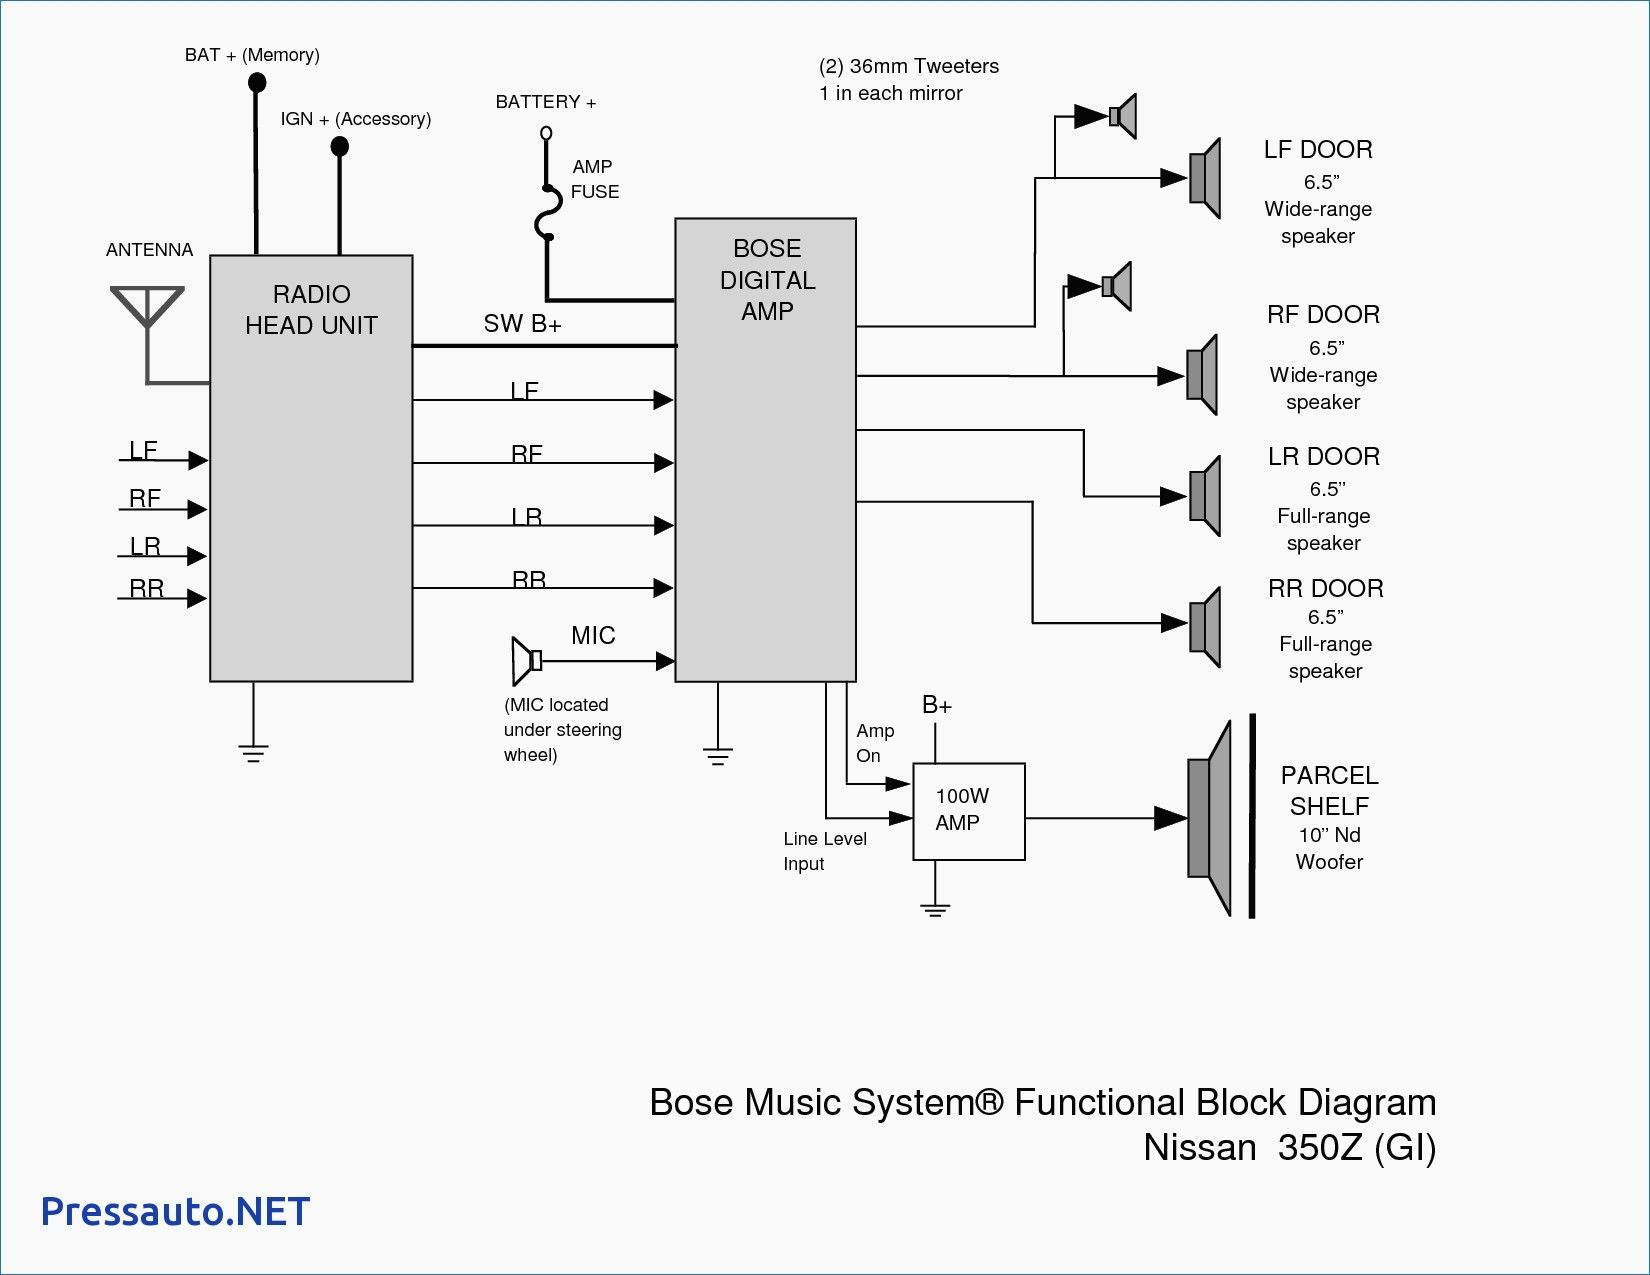 Bose Car Amplifier Wiring Diagram, http://bookingritzcarlton.info/bose -car-amplifier-wiring-diagram/ | Car amplifier, Bose, AmplifierPinterest